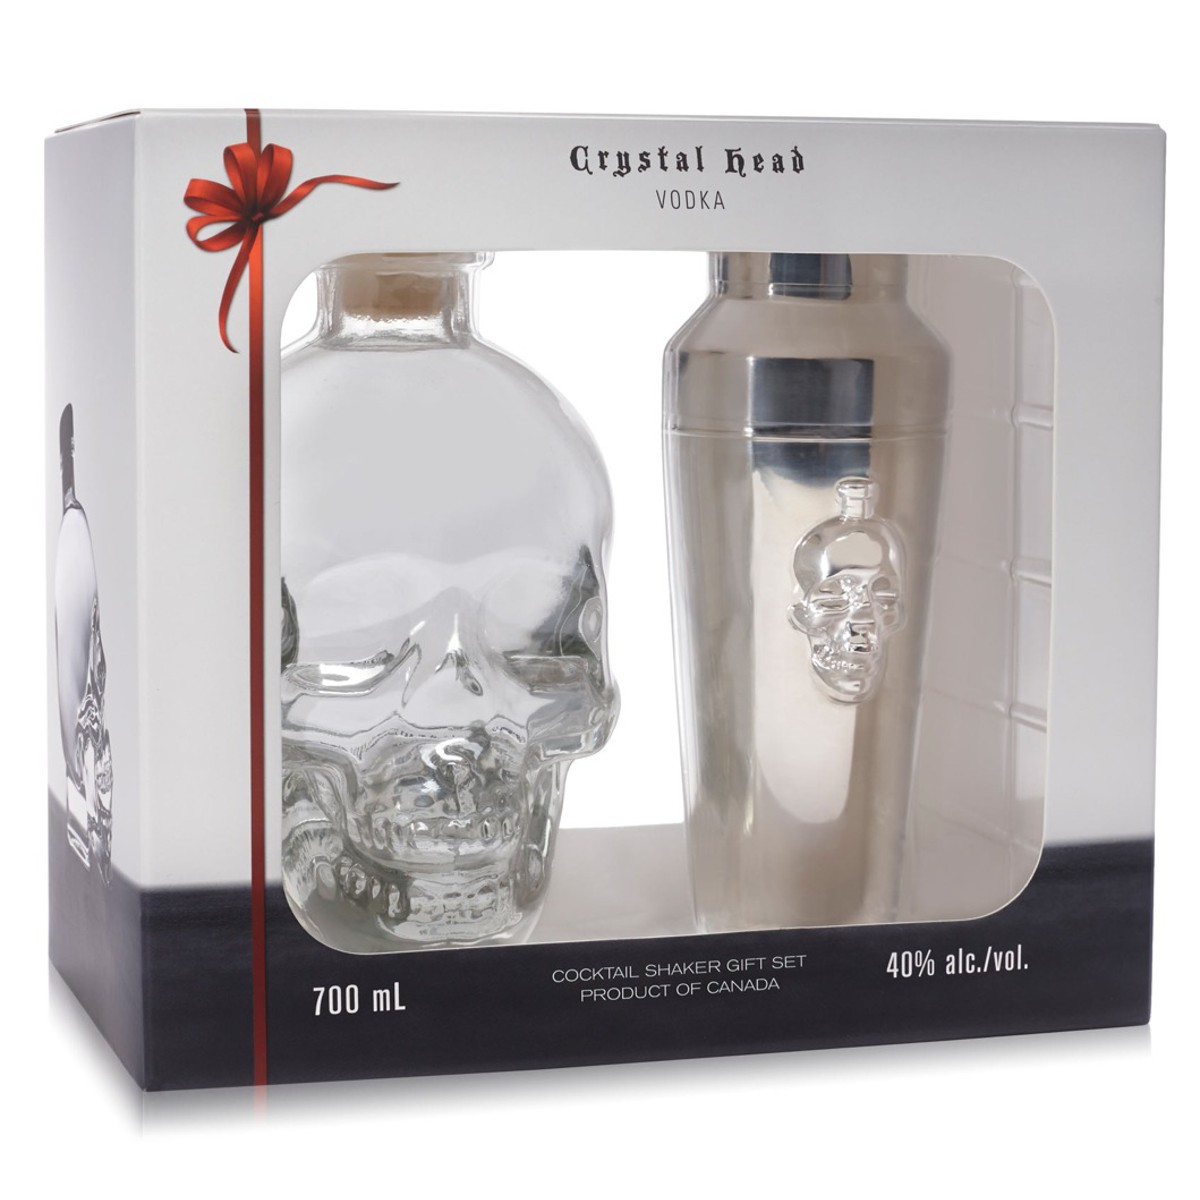 Crystal Head Vodka – Geschenkset mit Cocktail-Shaker